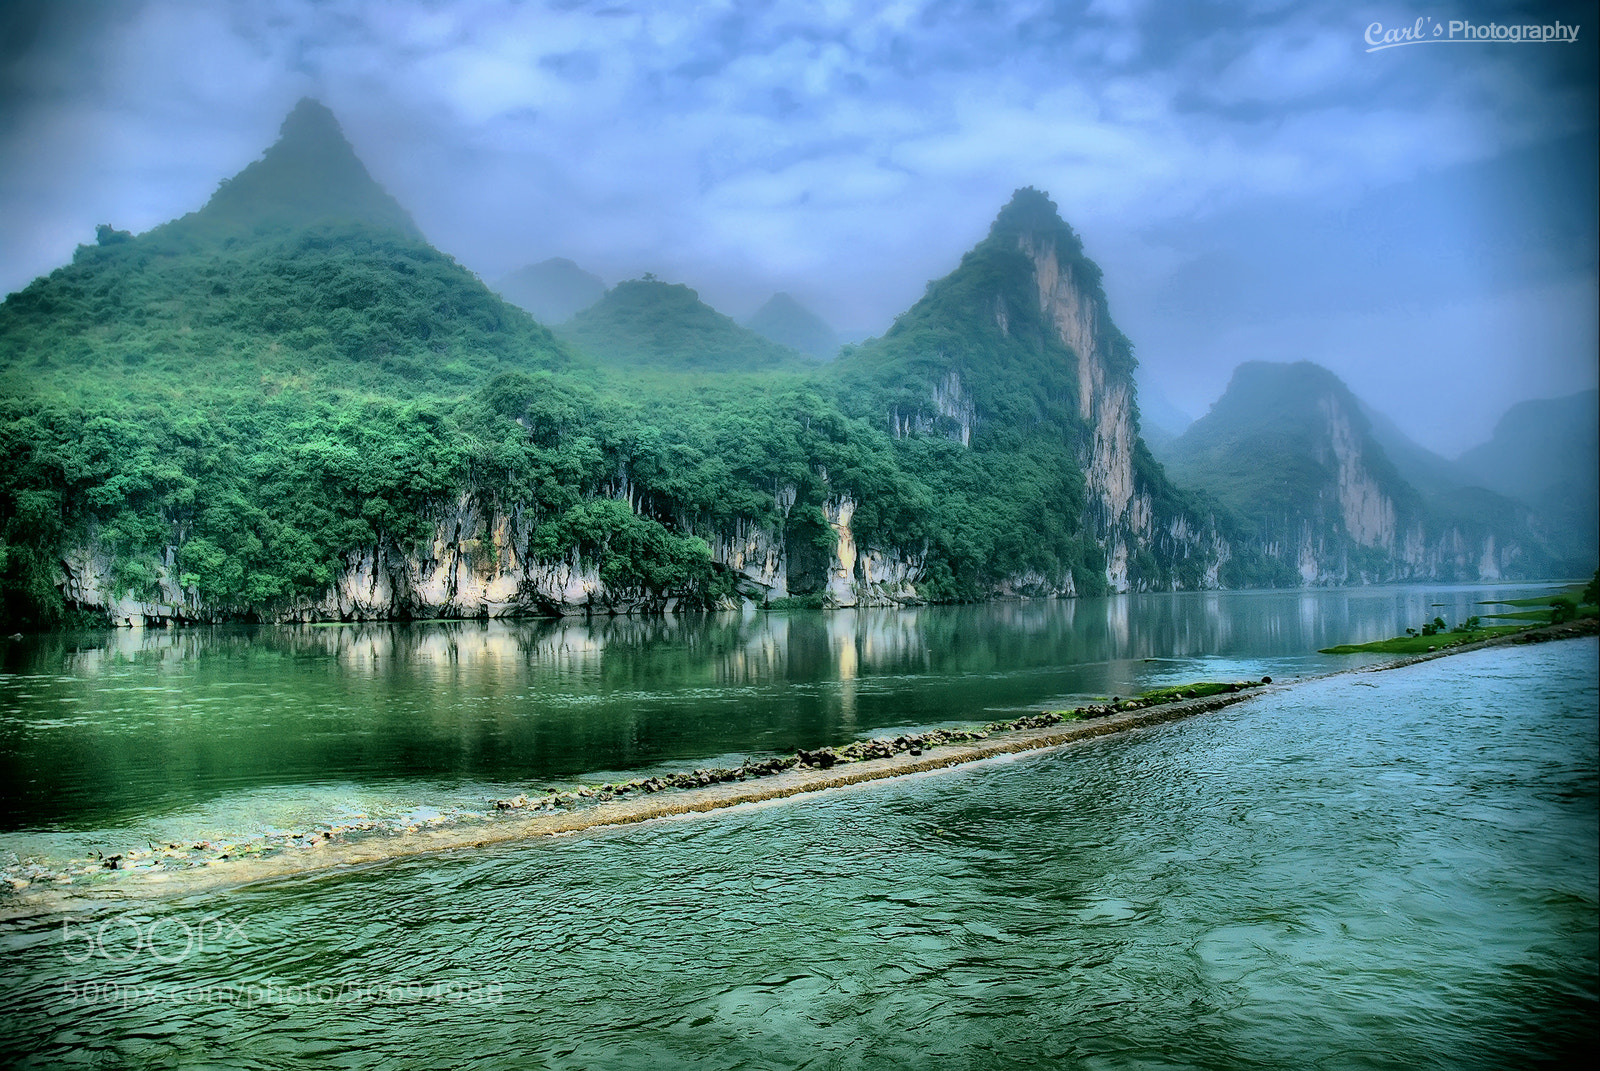 Photograph Li River by Carl Pan on 500px